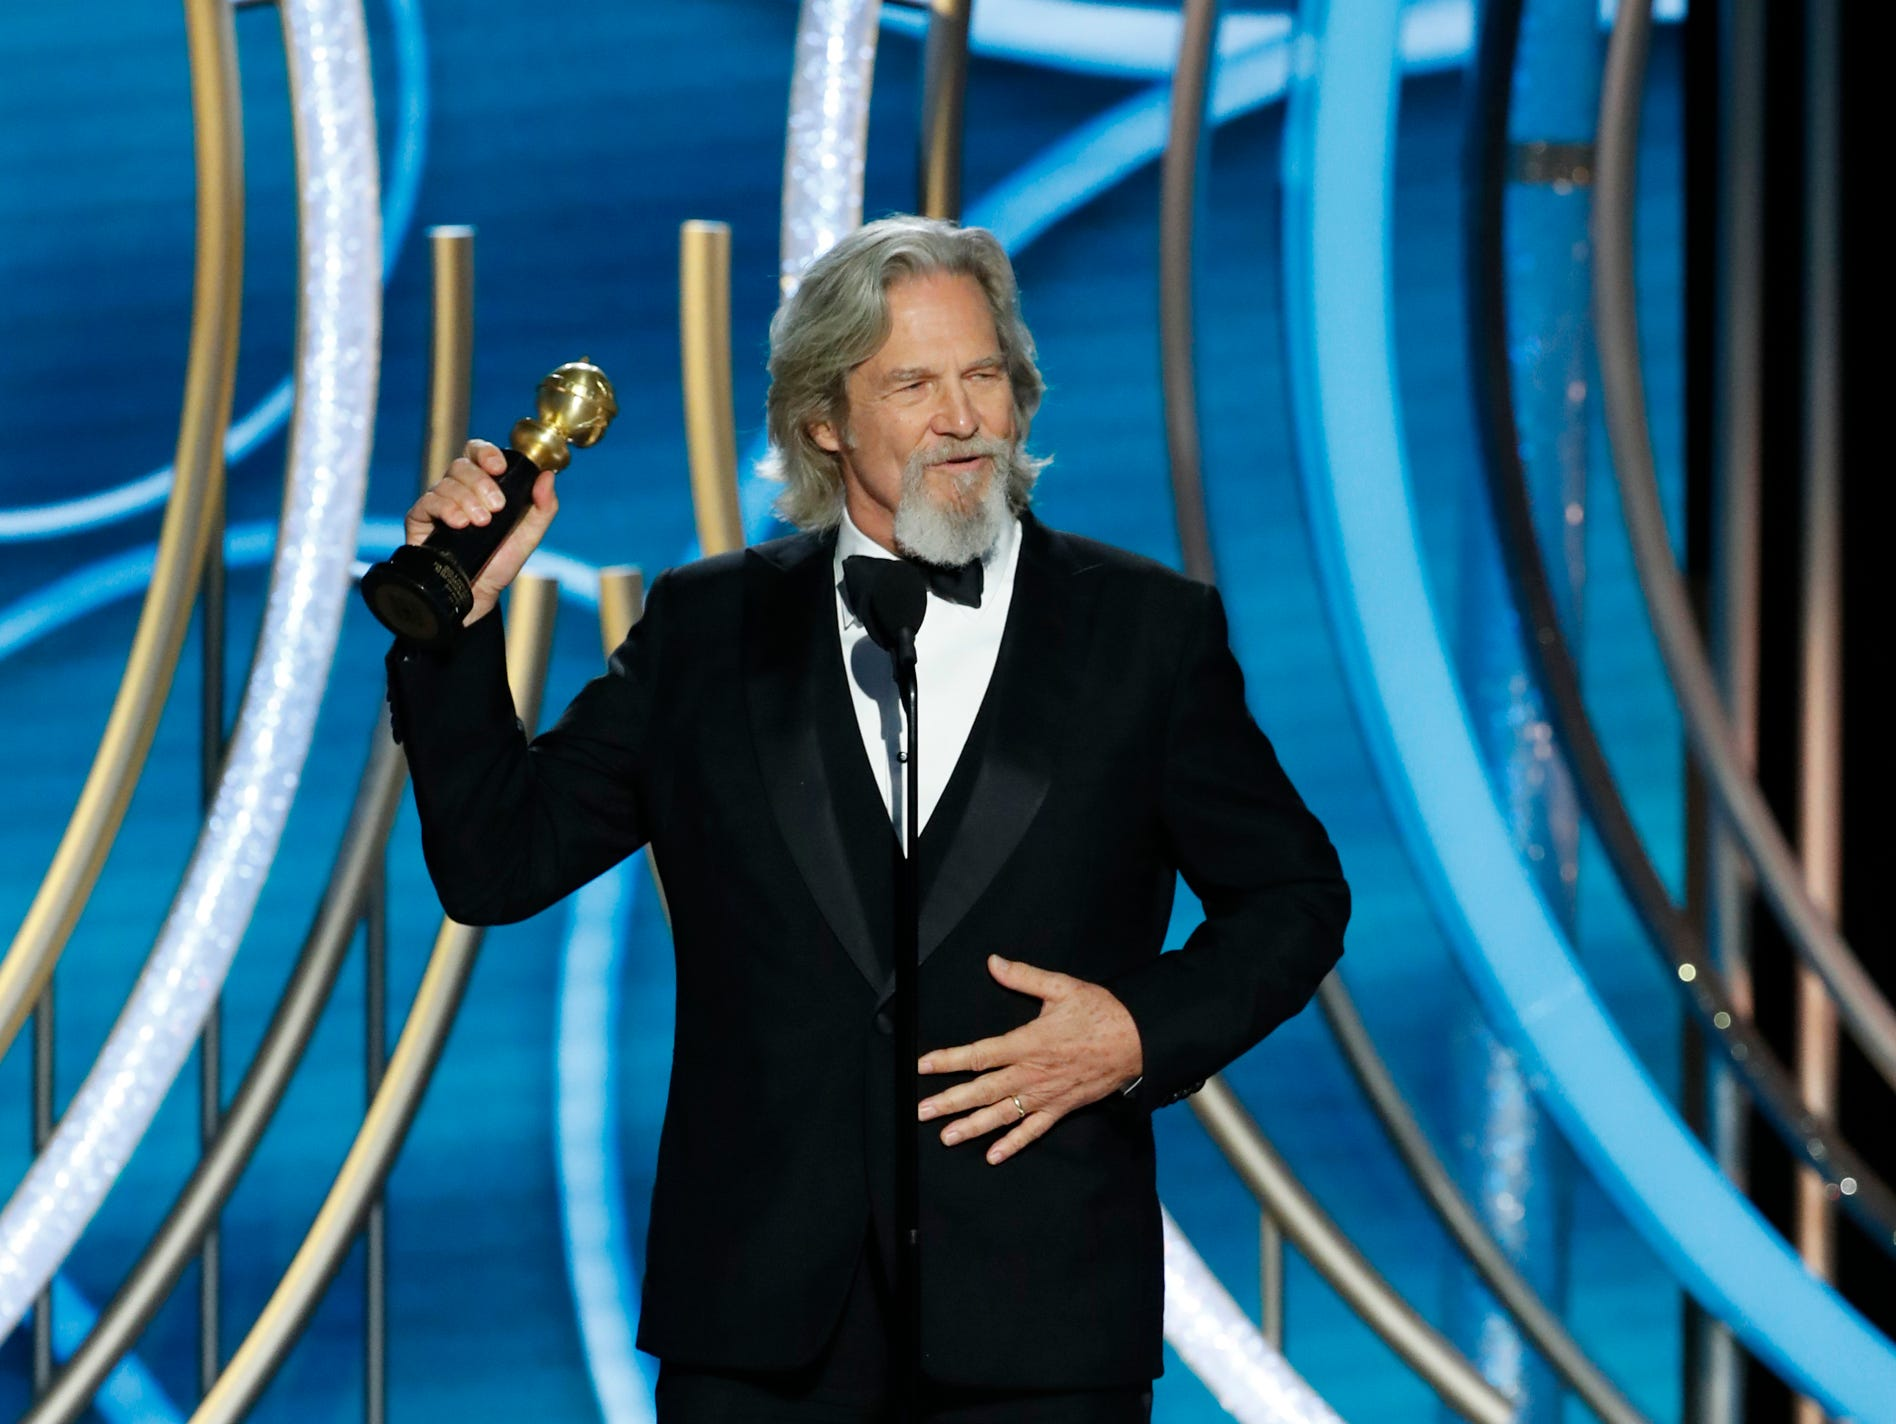 This image released by NBC shows Jeff Bridges accepting the Cecil B. Demille Award during the 76th Annual Golden Globe Awards at the Beverly Hilton Hotel.